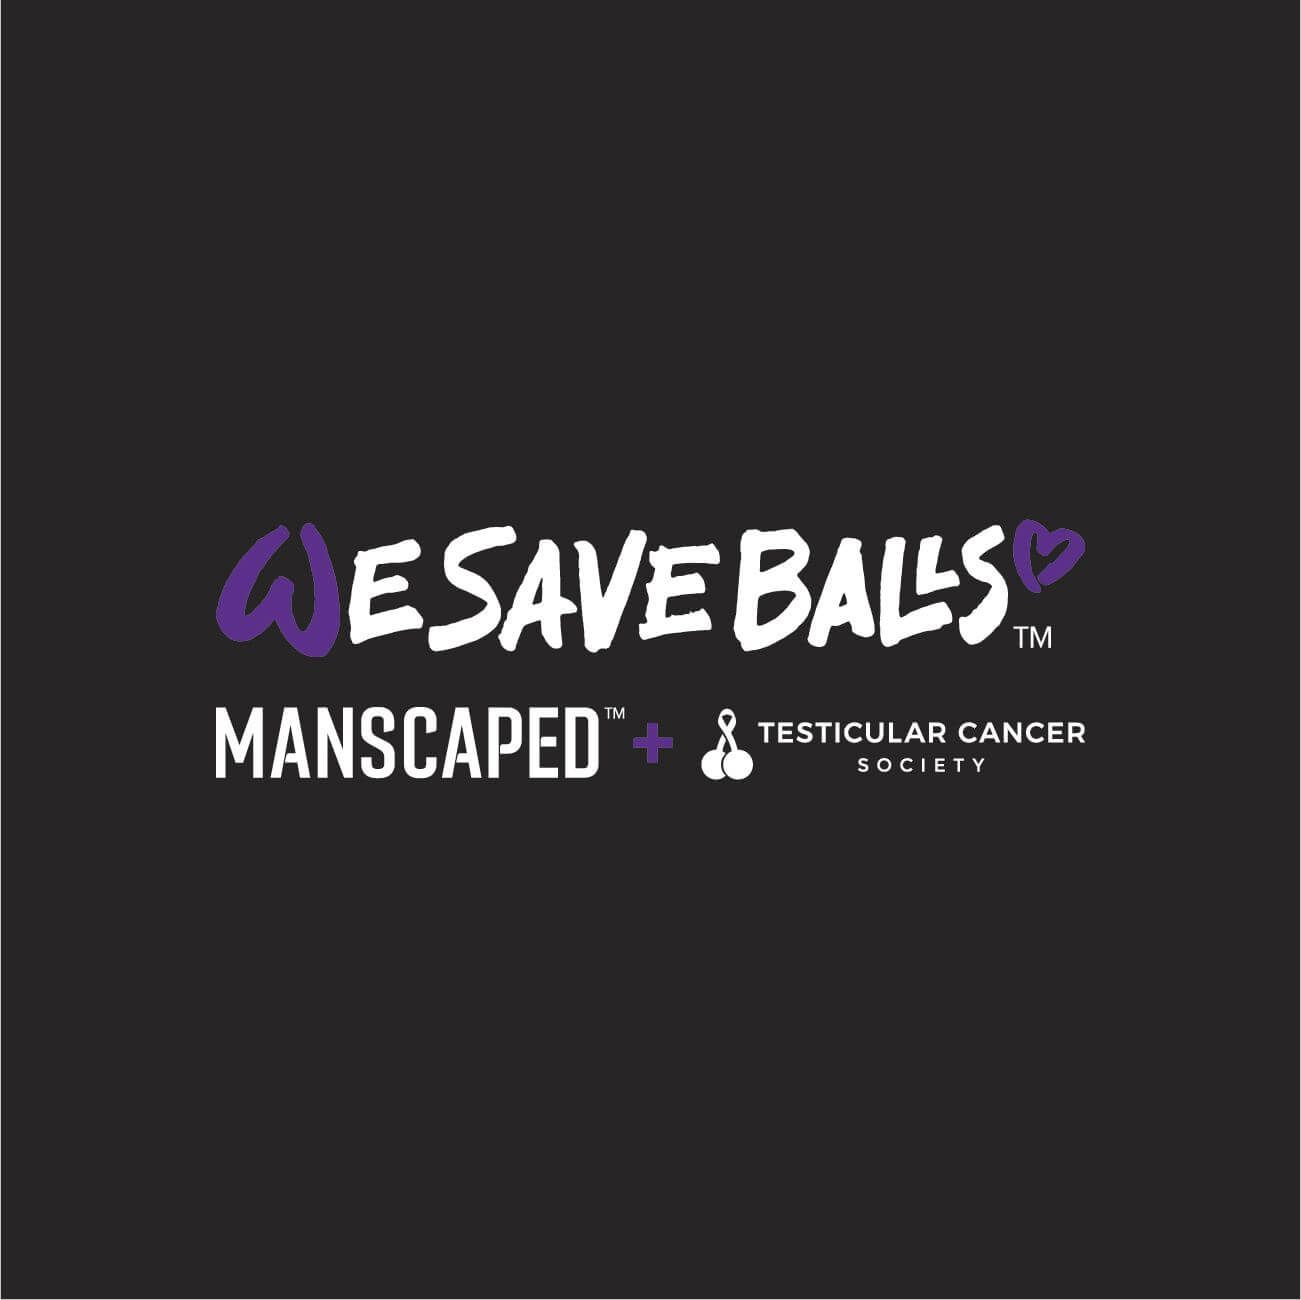 Steve-O x MANSCAPED: Check Your Balls Regularly!